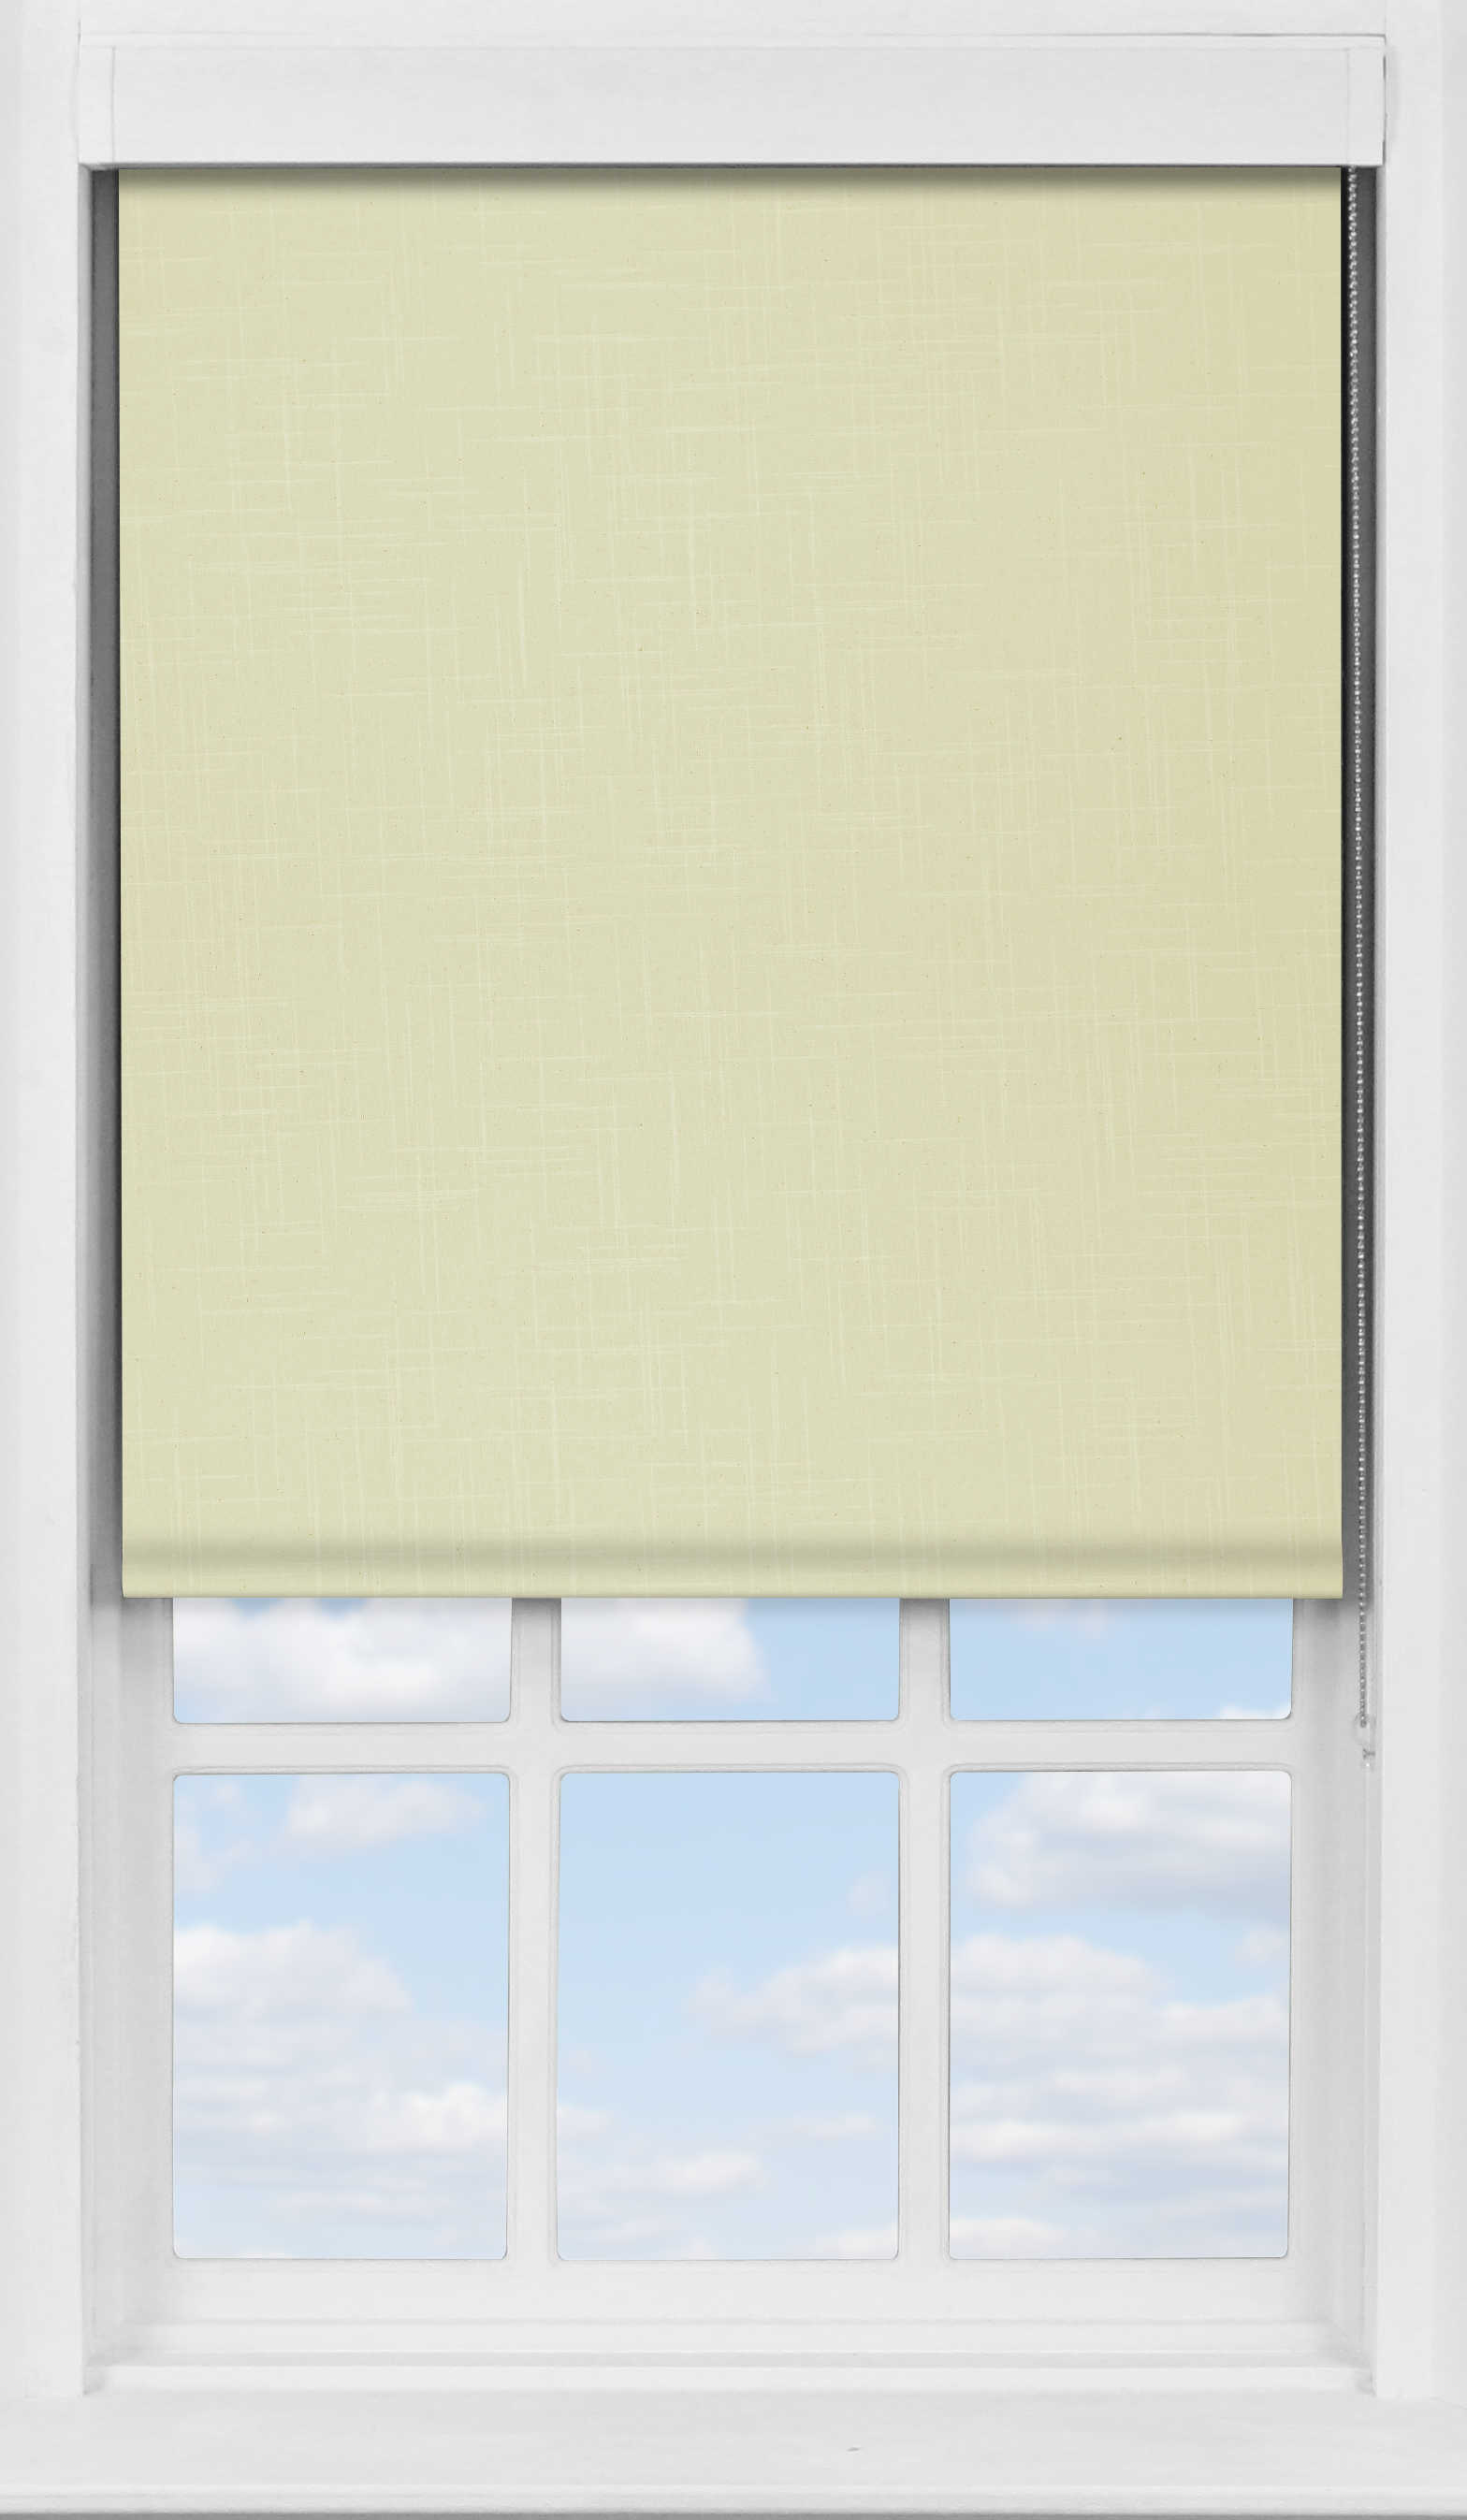 Premium Roller Blind in Beachcomber Translucent